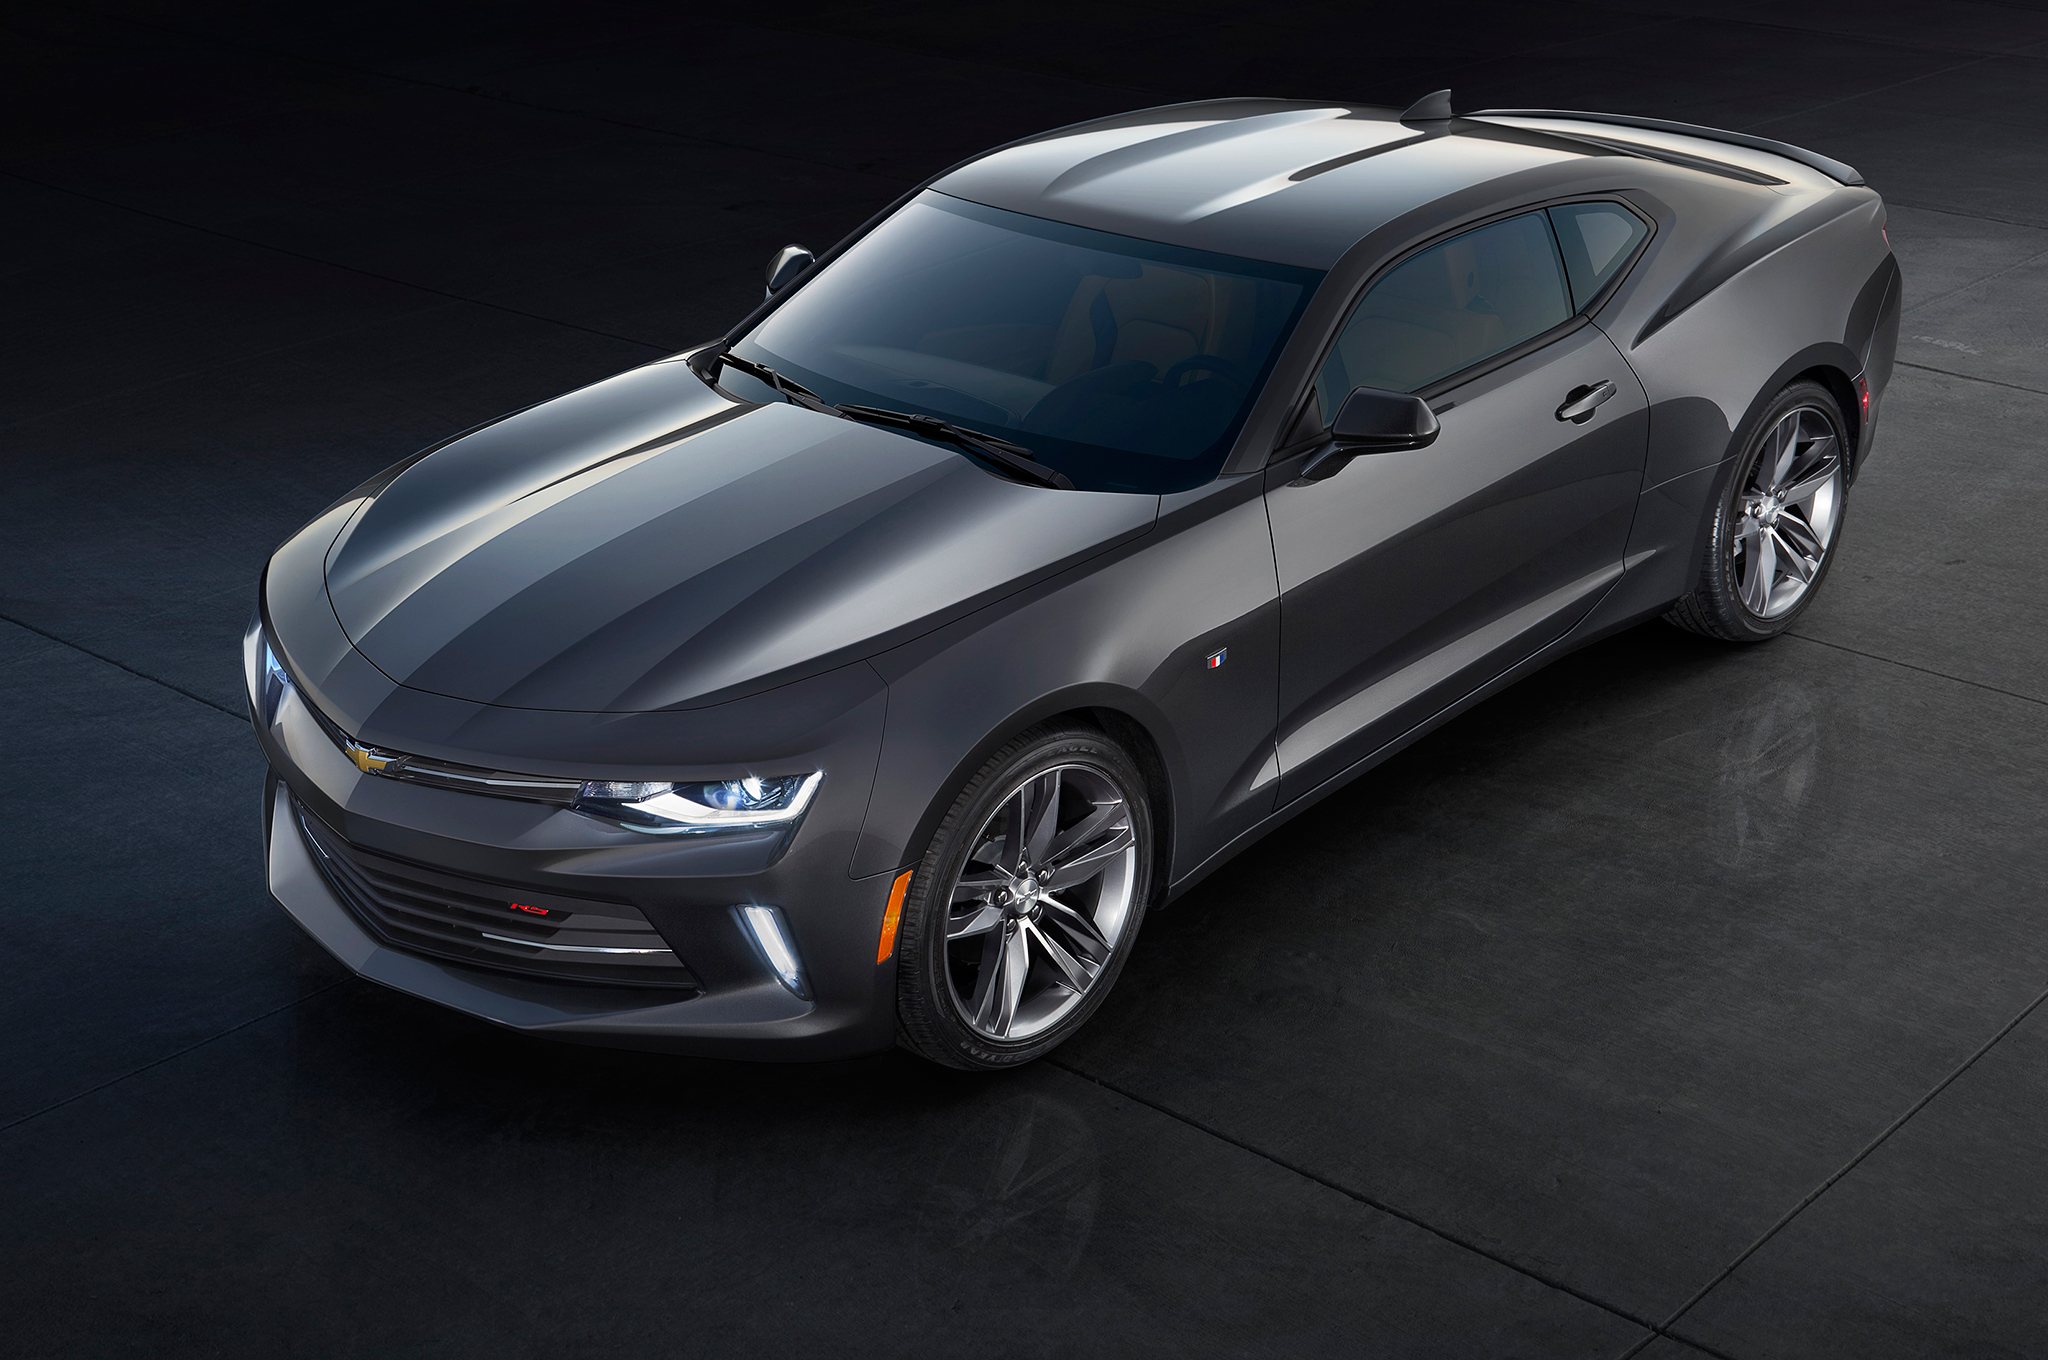 2016 Camaro styling is evolutionary, with much greater attention to detail than the Gen 5. It has a tauter, shrink-wrapped appearance that is very apparent when viewed in person. You can tell this one is an LT model because it doesn't have hood vents exclusive to the SS.